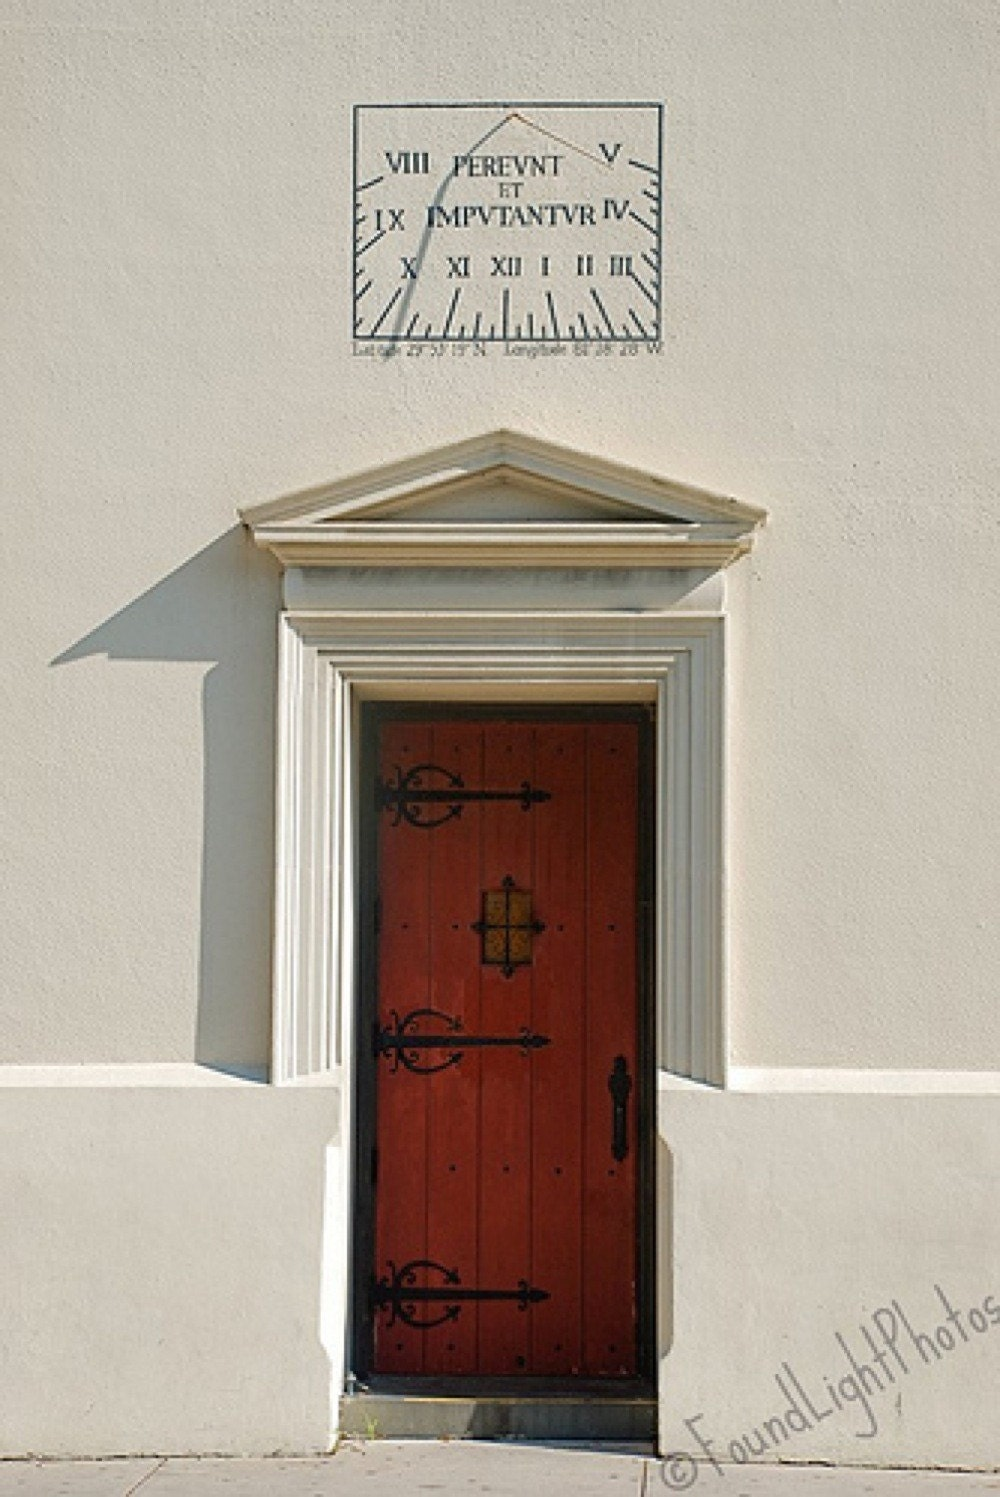 St. Augustine Red Door  8x12 Photograph